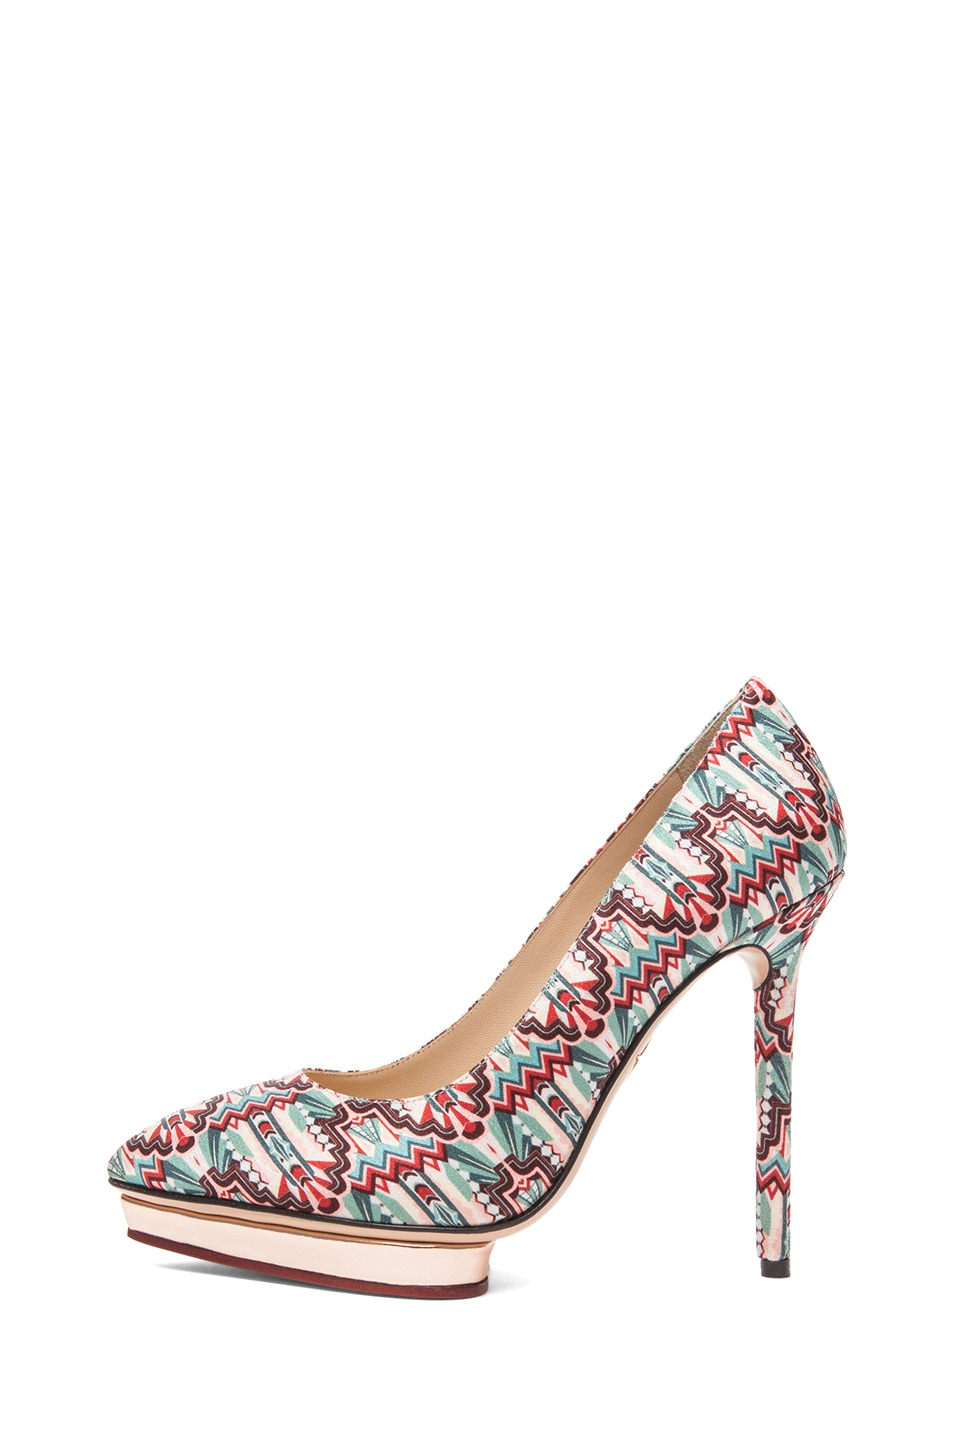 Image 1 of Charlotte Olympia Debonaire Crepe Stain Deco Print Pumps in Multi